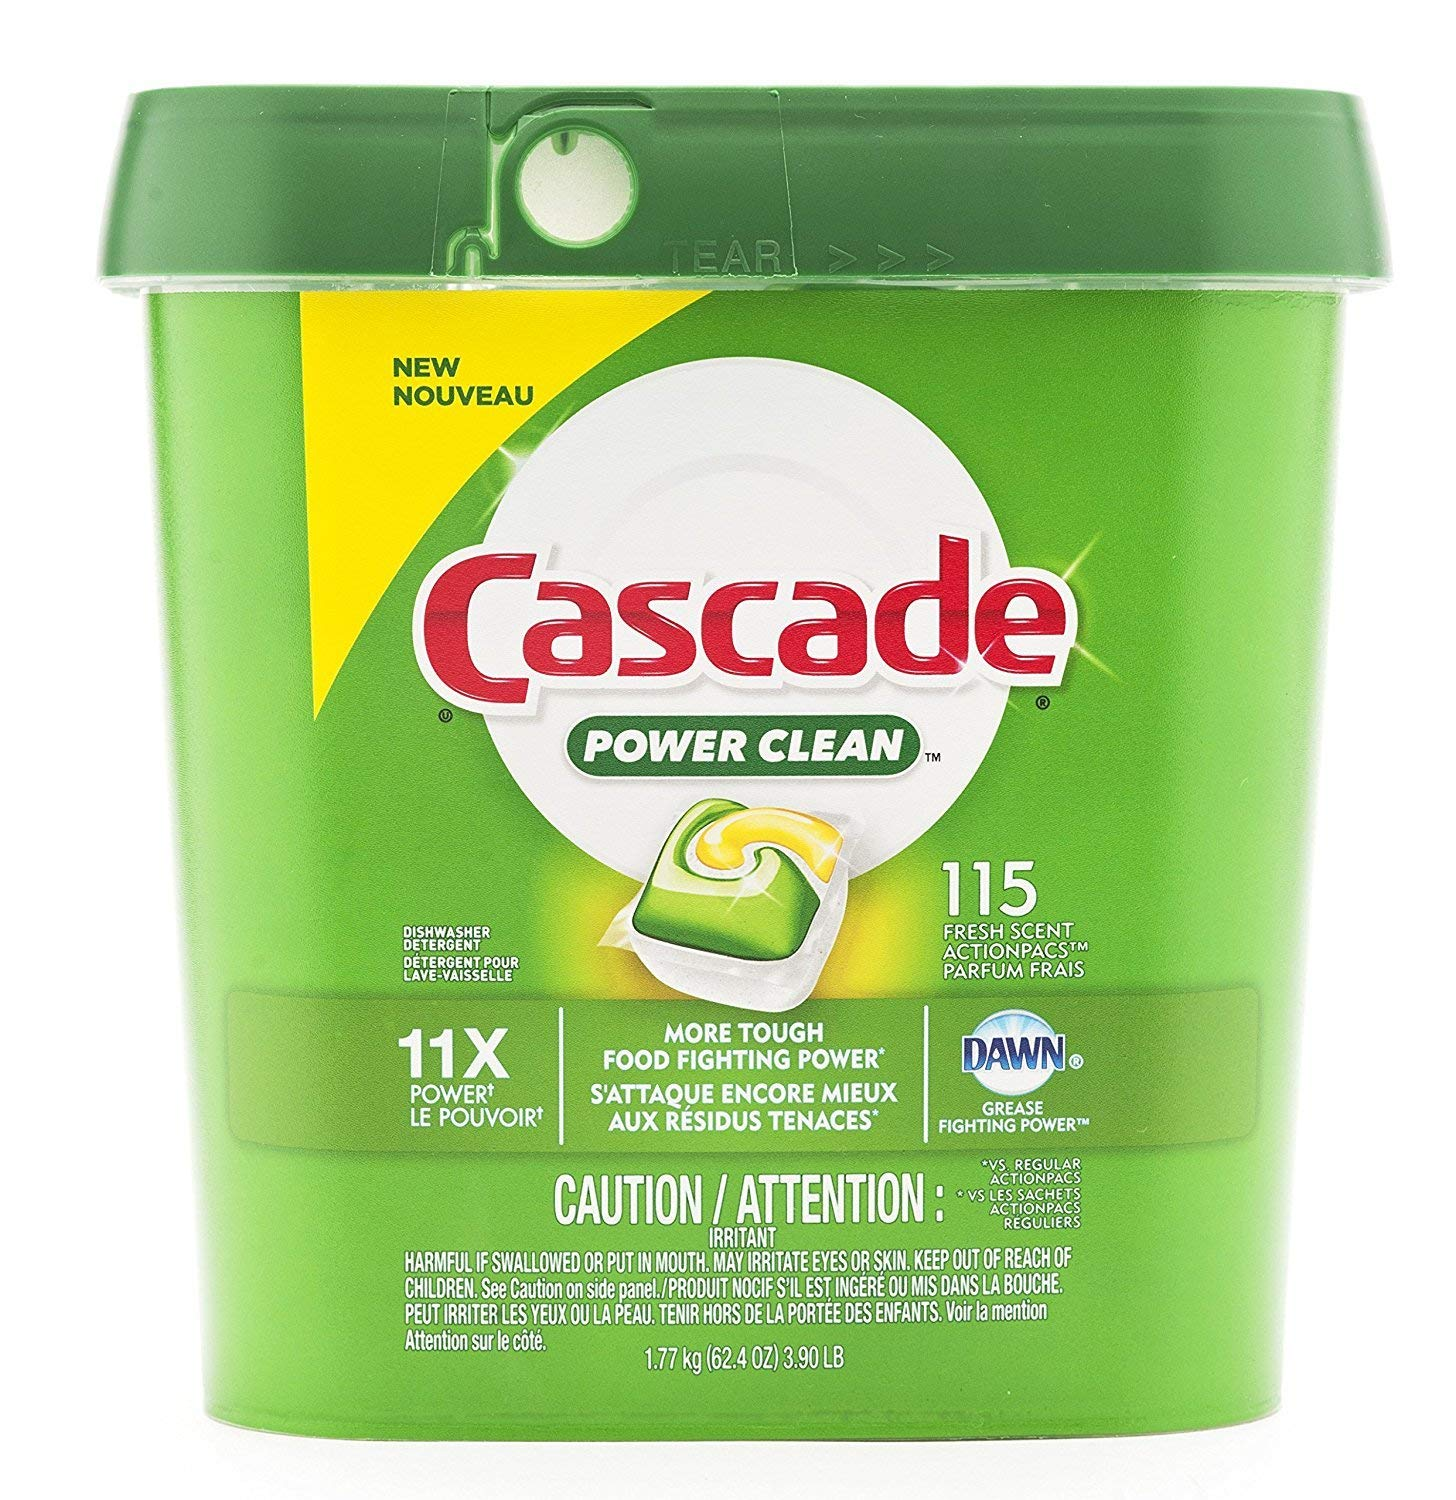 Cascade Power Clean Dishwasher Tabs, 11X Power with Fresh Scent - 115 Count